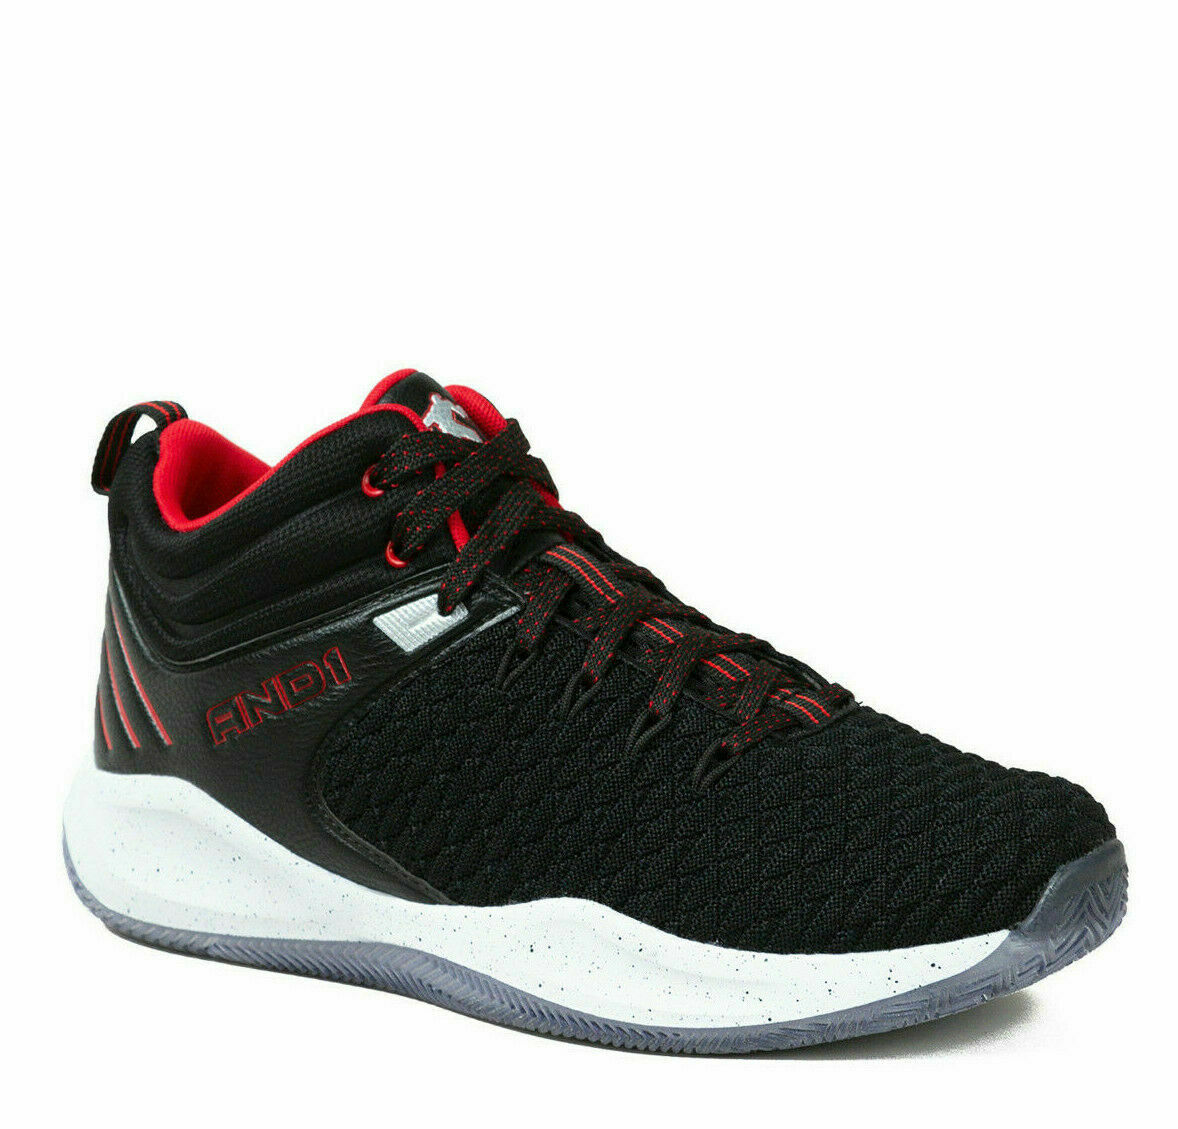 AND1 Men's SIZE 11 Knit Basketball BB Athletic Shoe Black, RED on eBay thumbnail